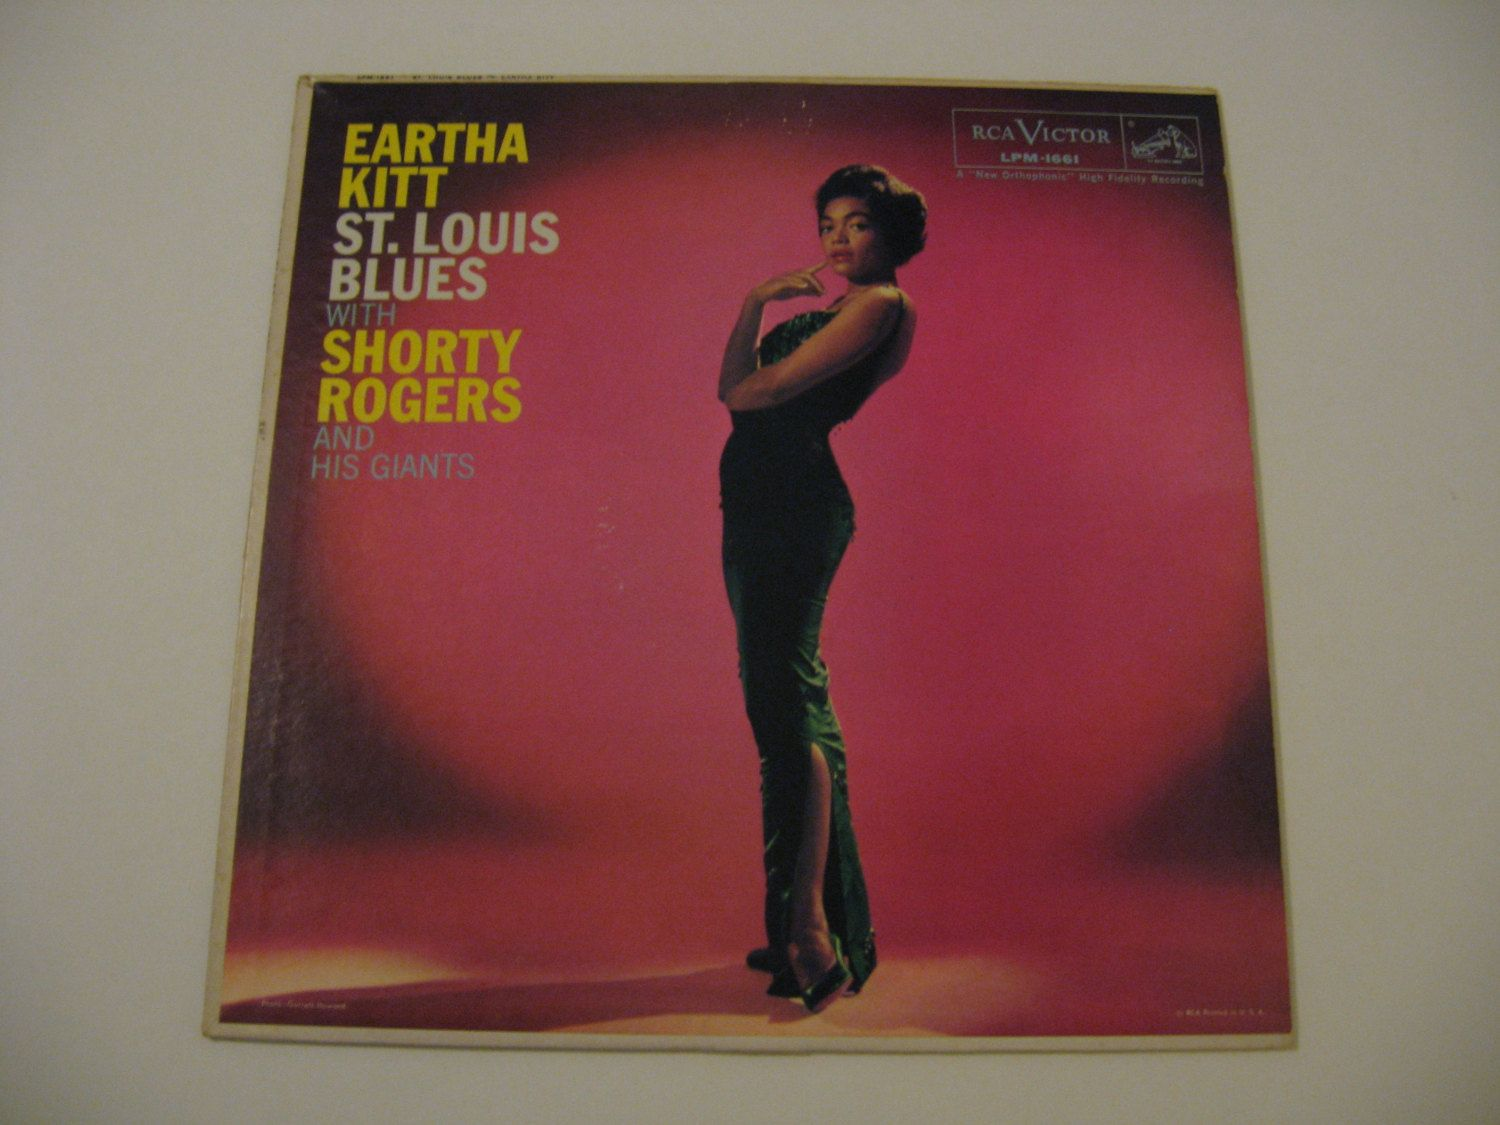 Eartha kitt st louis blues vinyl records etsy favorites